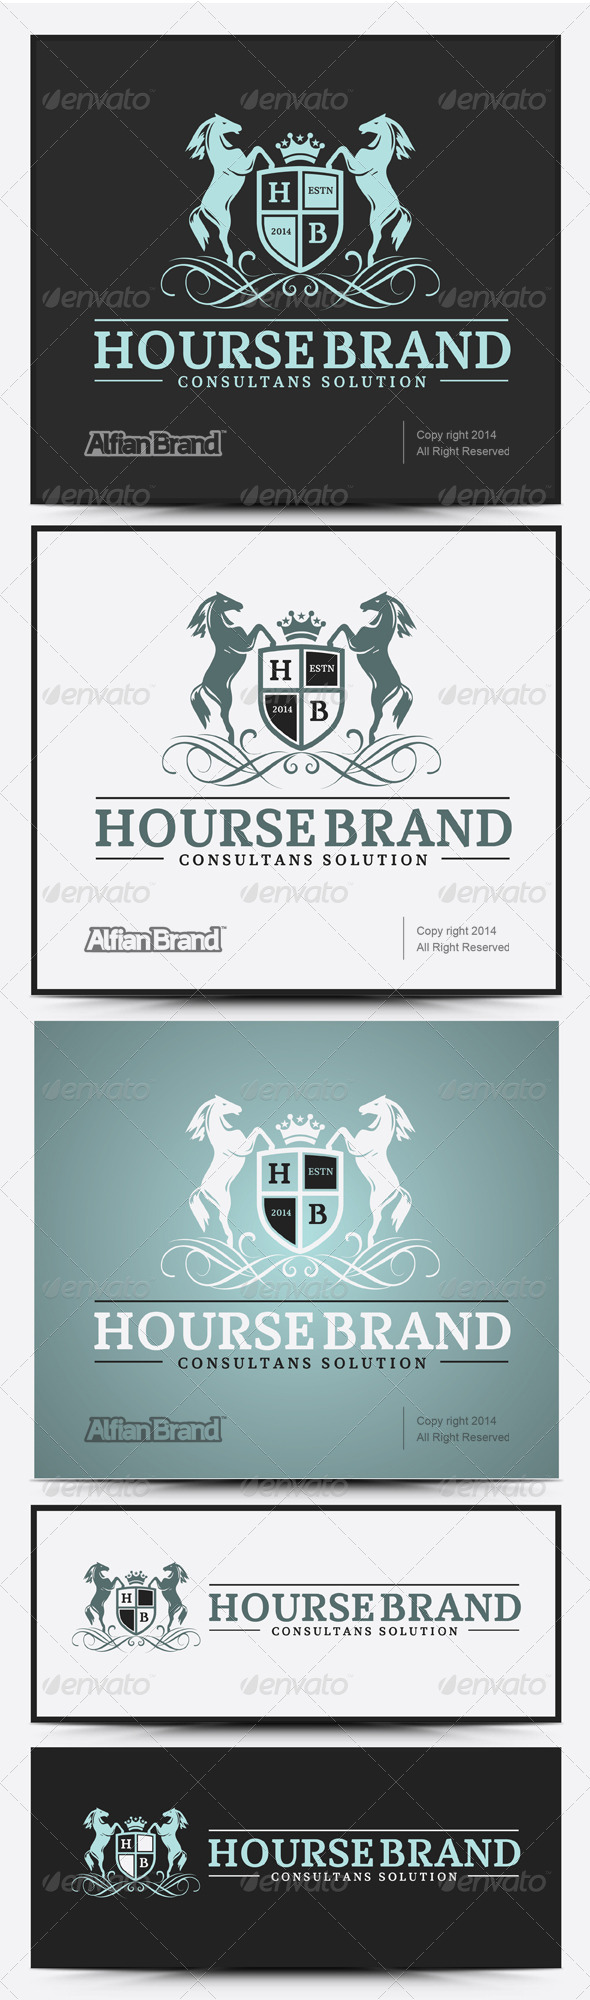 GraphicRiver Royal Hourse Brand V.1 7974809